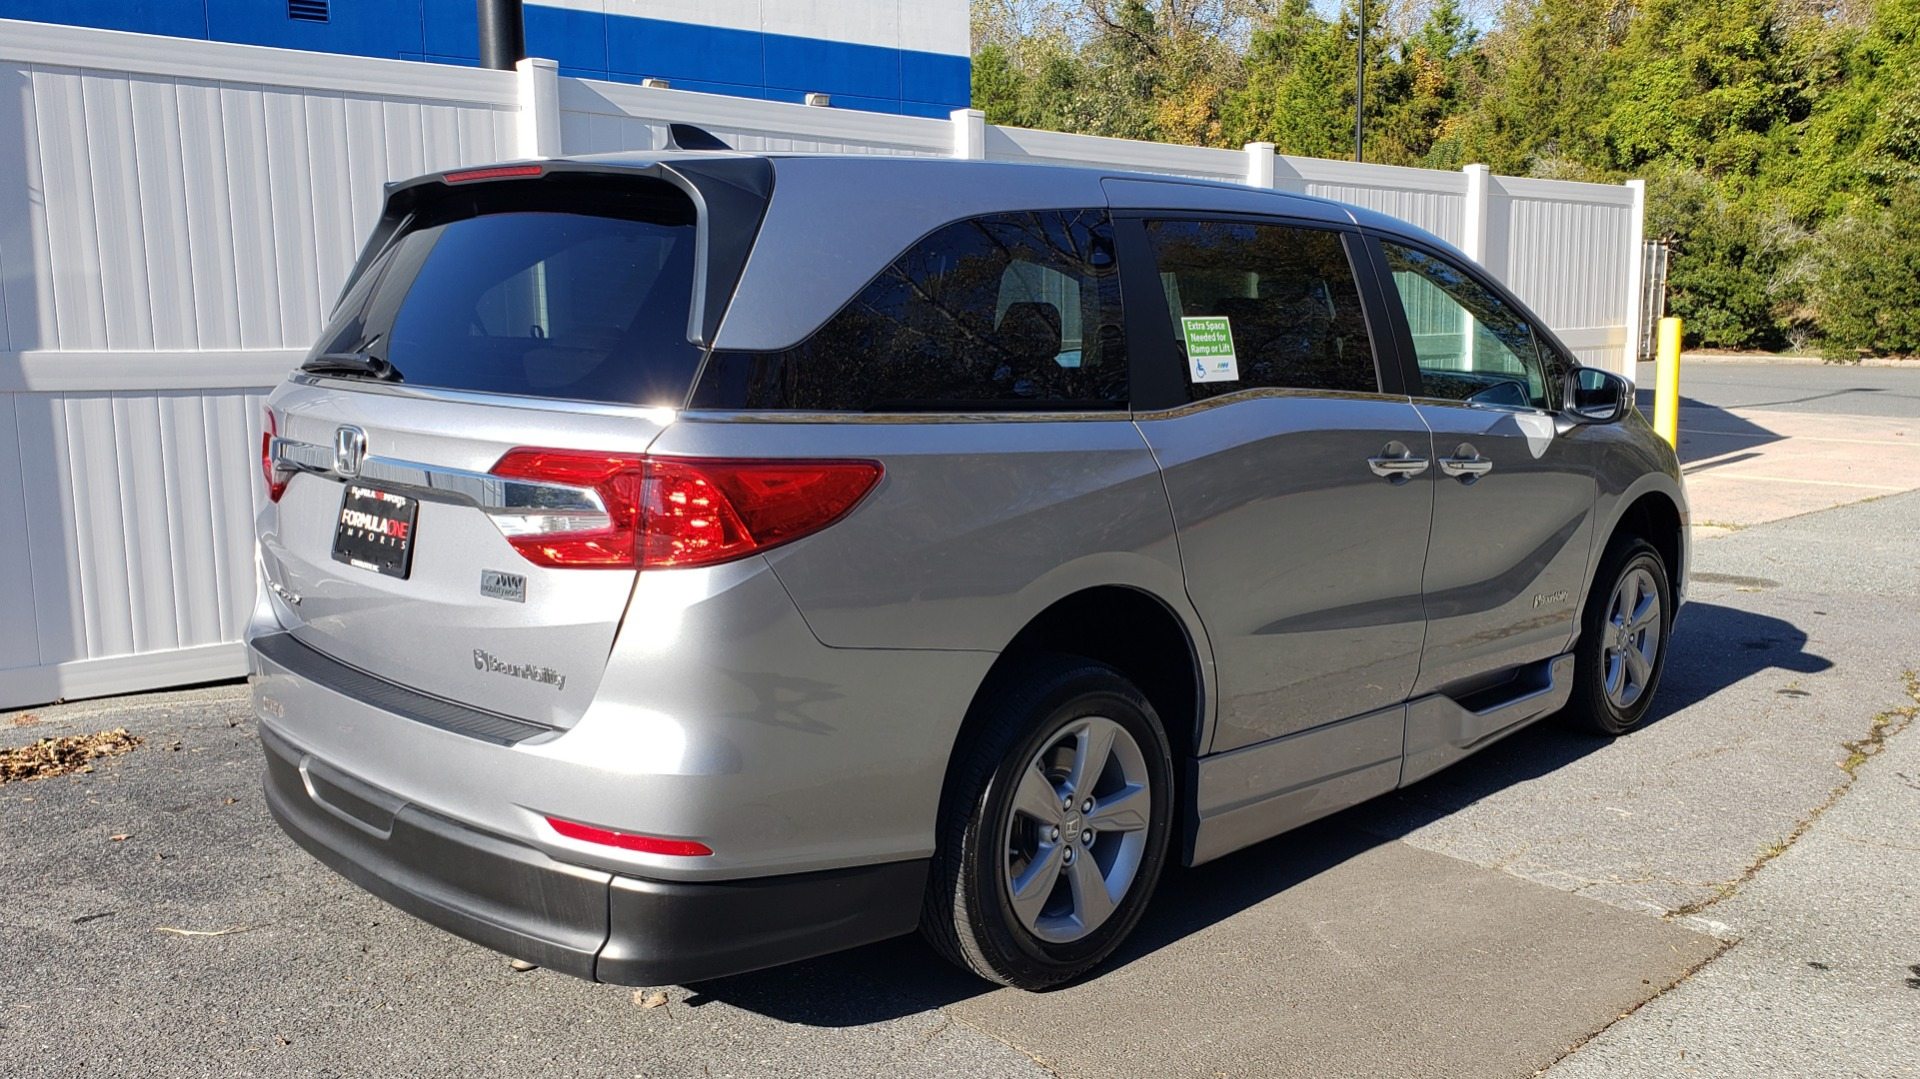 Used 2019 Honda ODYSSEY EX-L BRAUNABILITY / NAV / RES / LKA / BLUE-RAY / SUNROOF / REARVIEW for sale $49,999 at Formula Imports in Charlotte NC 28227 6